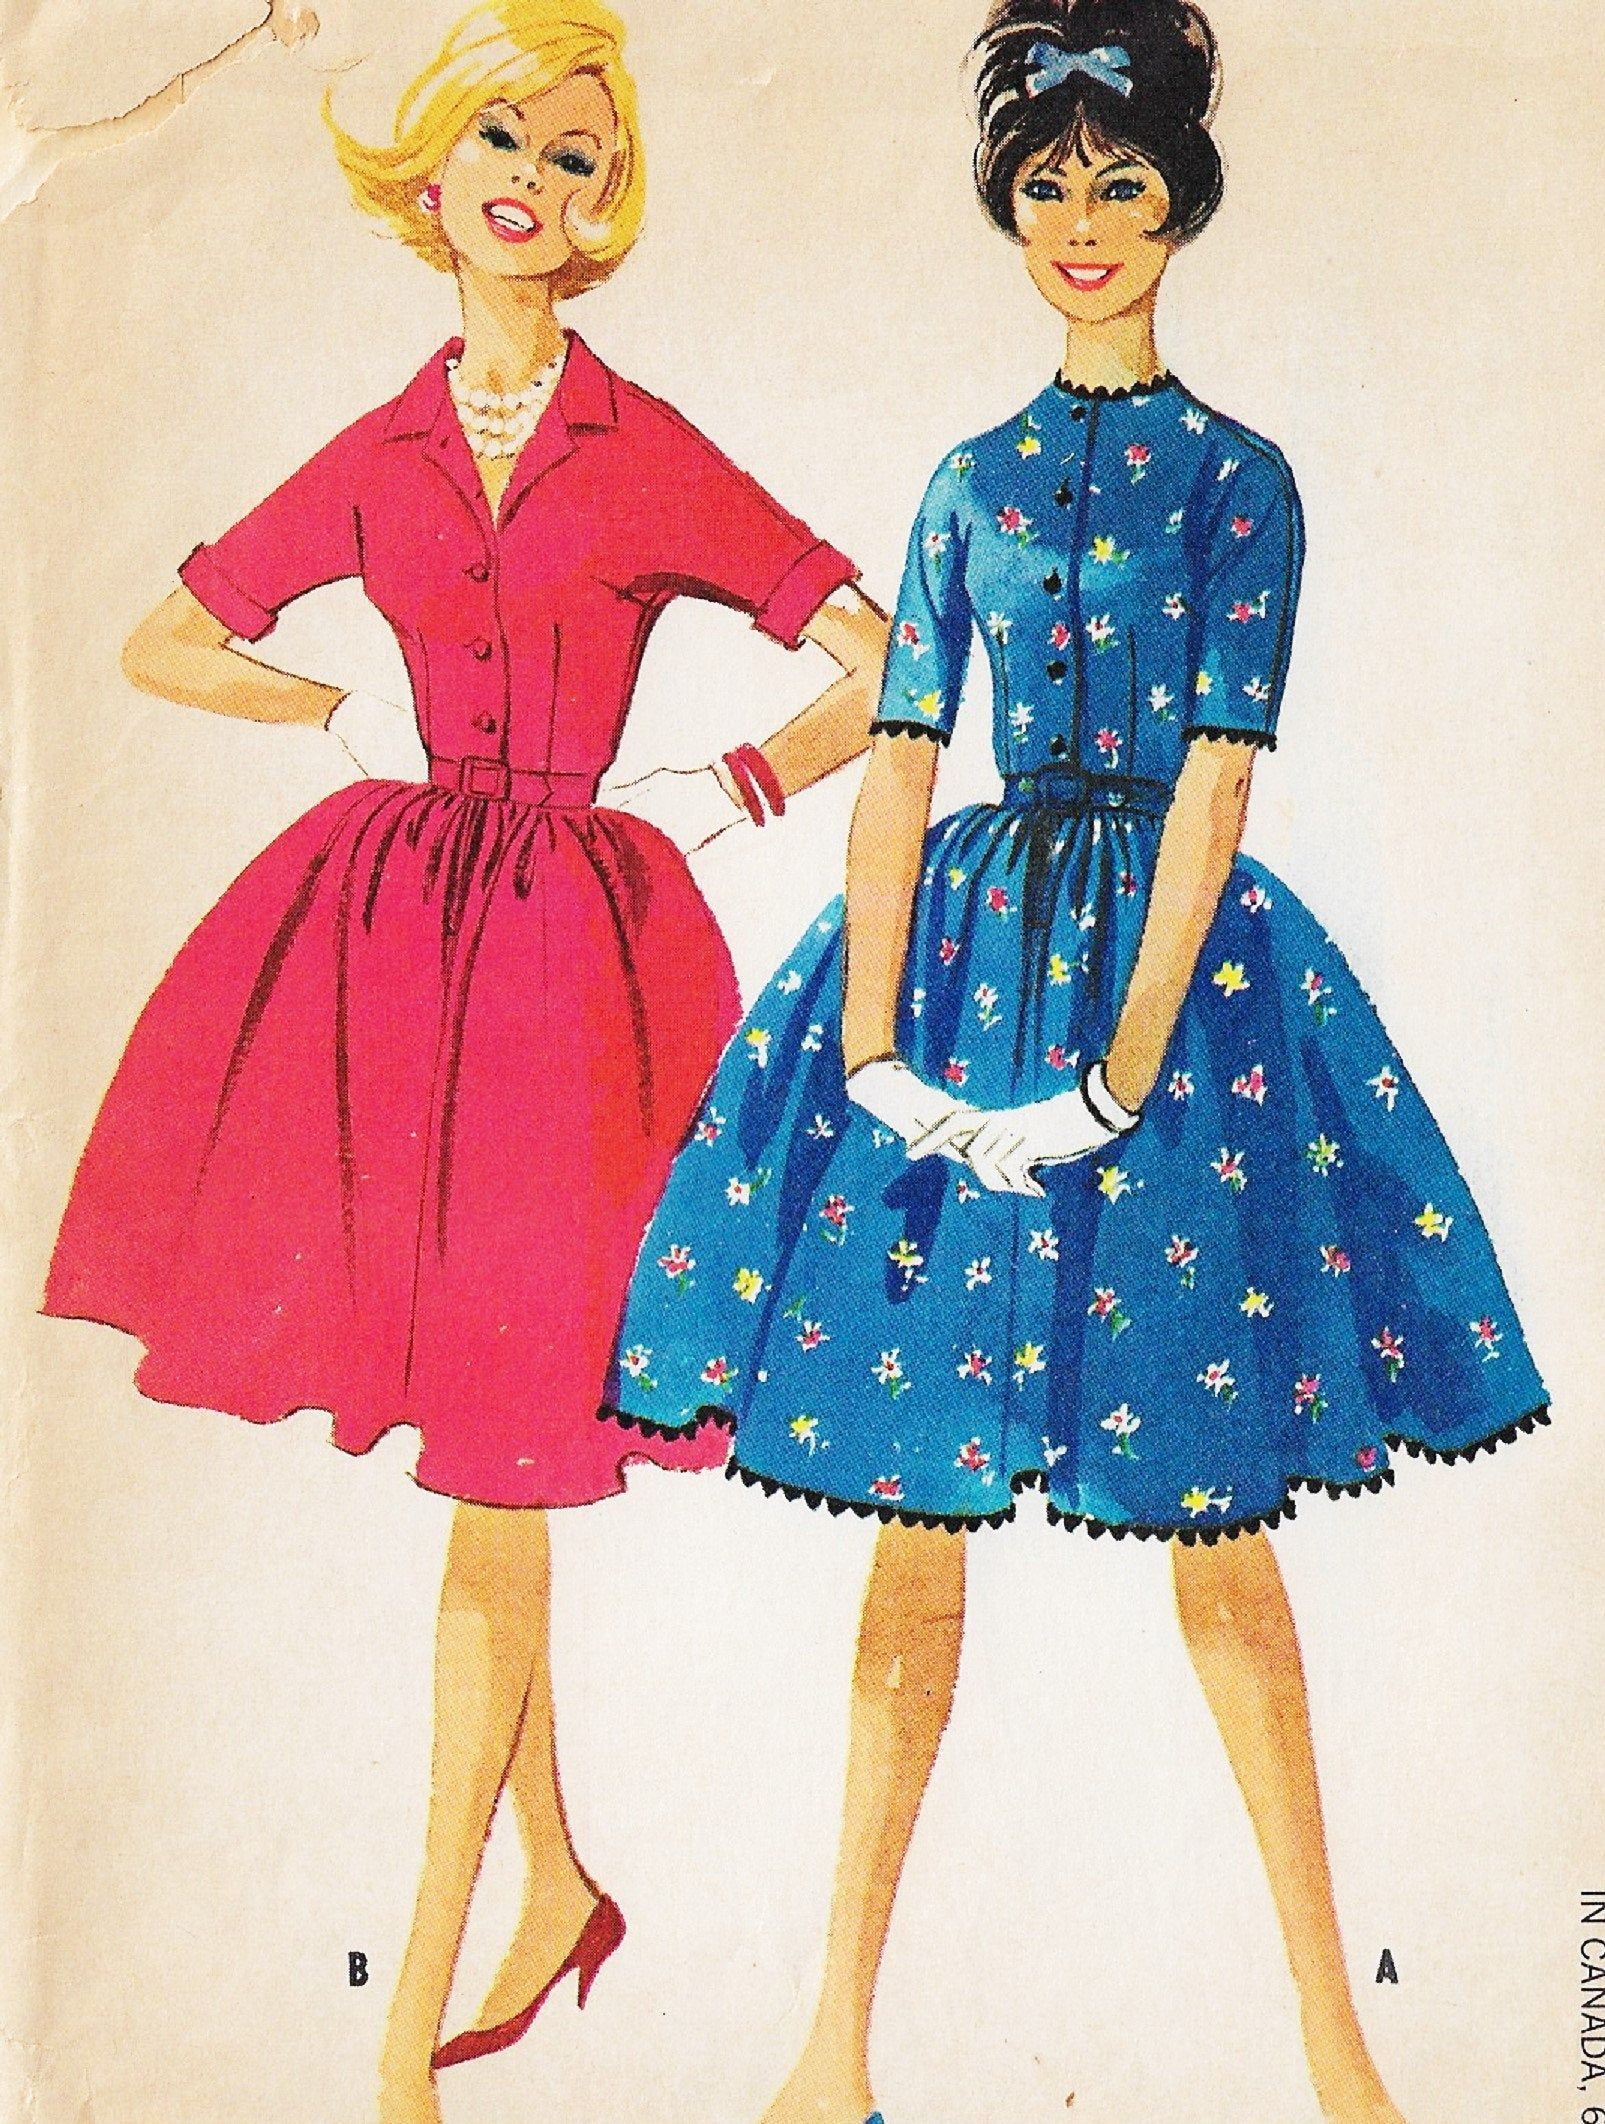 1960s Mccalls Sewing Pattern 5953 Womens Rockabilly Dress 2 Etsy In 2021 Mccalls Sewing Patterns Rockabilly Dress Sewing Patterns